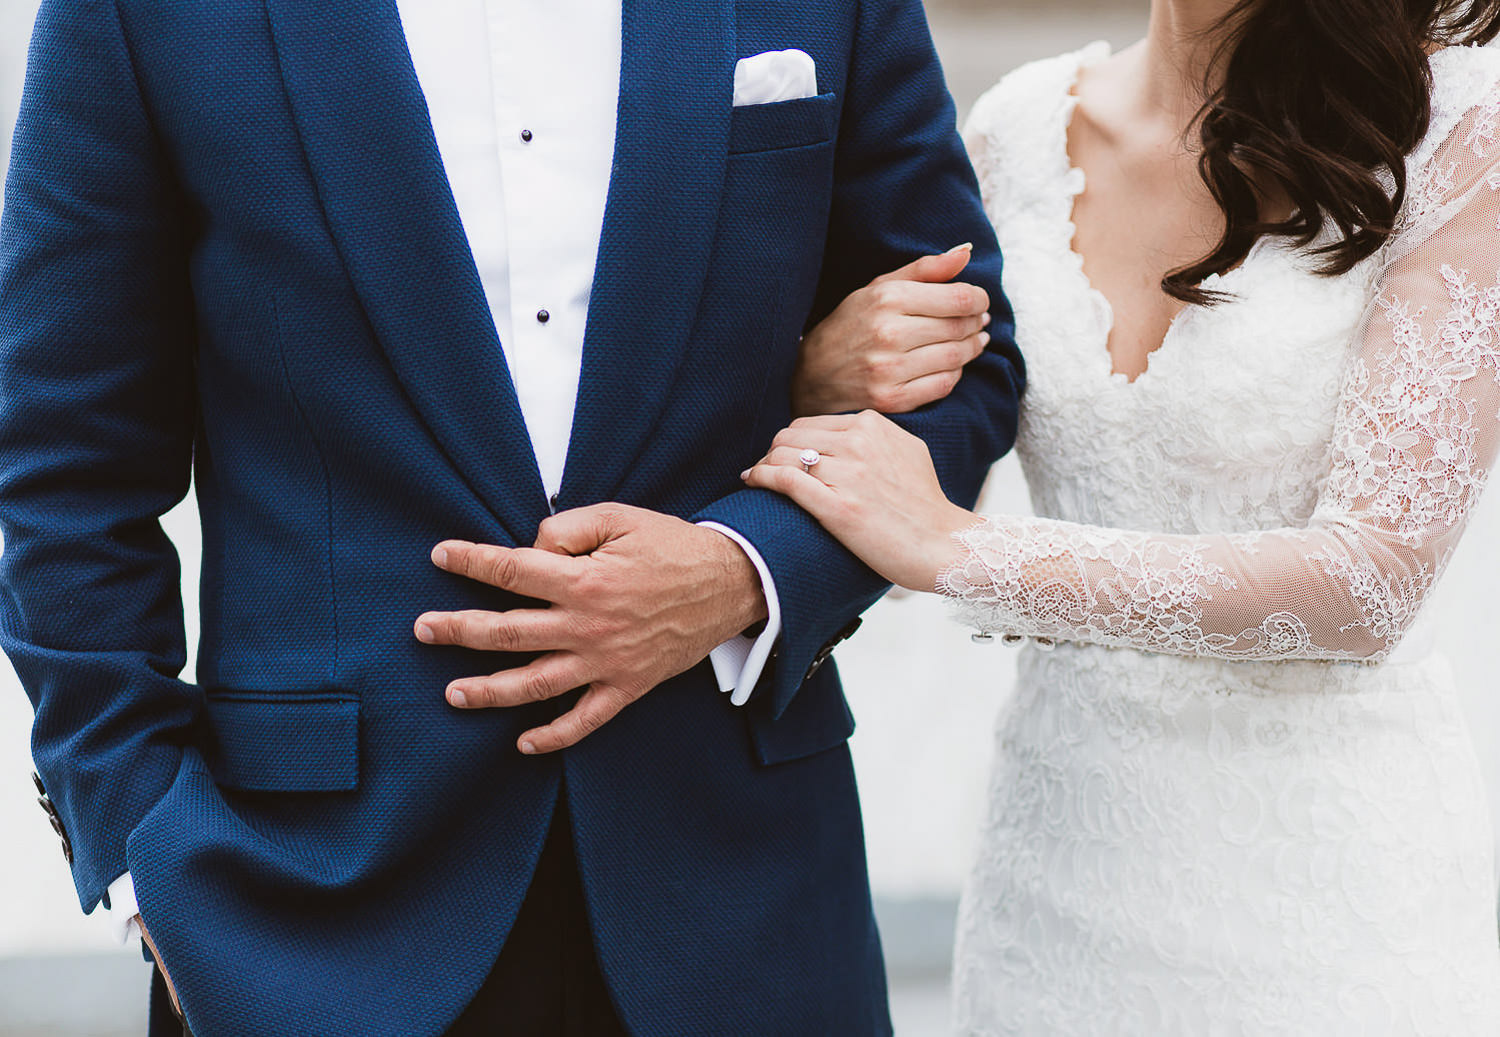 Stunning elegant couple details | Photo: Camilla Anchisi - Italian wedding photographer